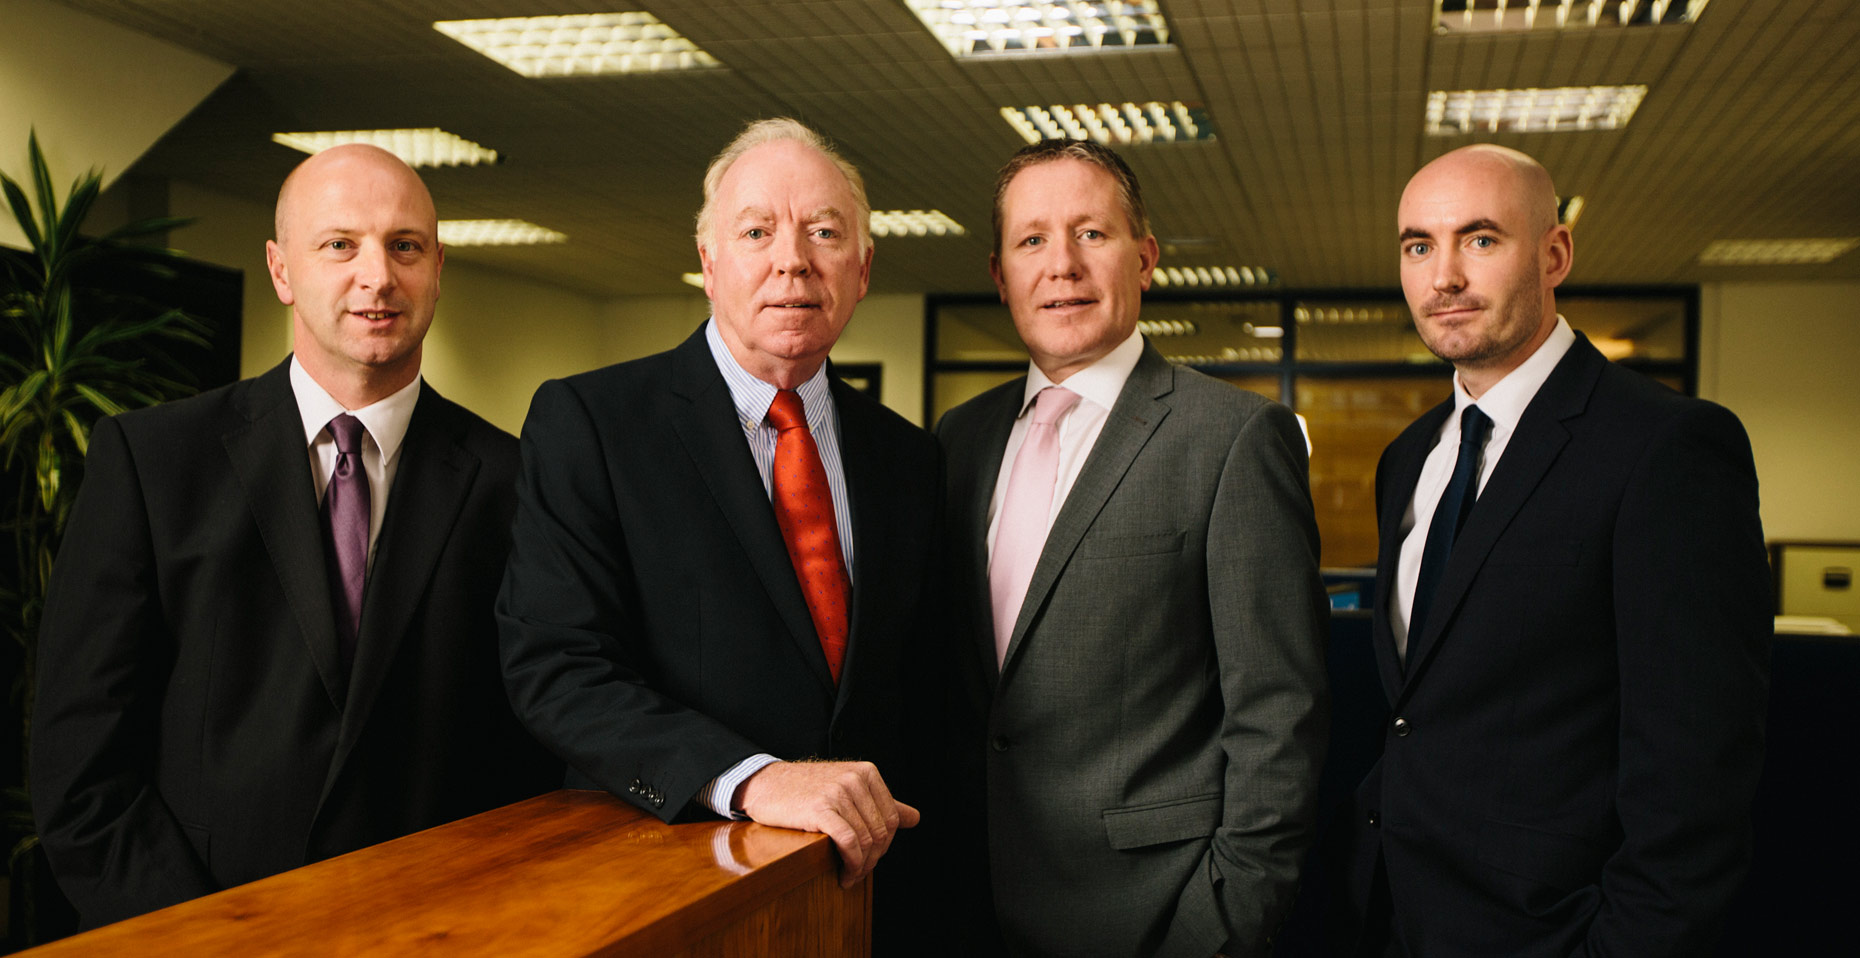 Alan Tierney and Partners Ltd appoint a new Director.